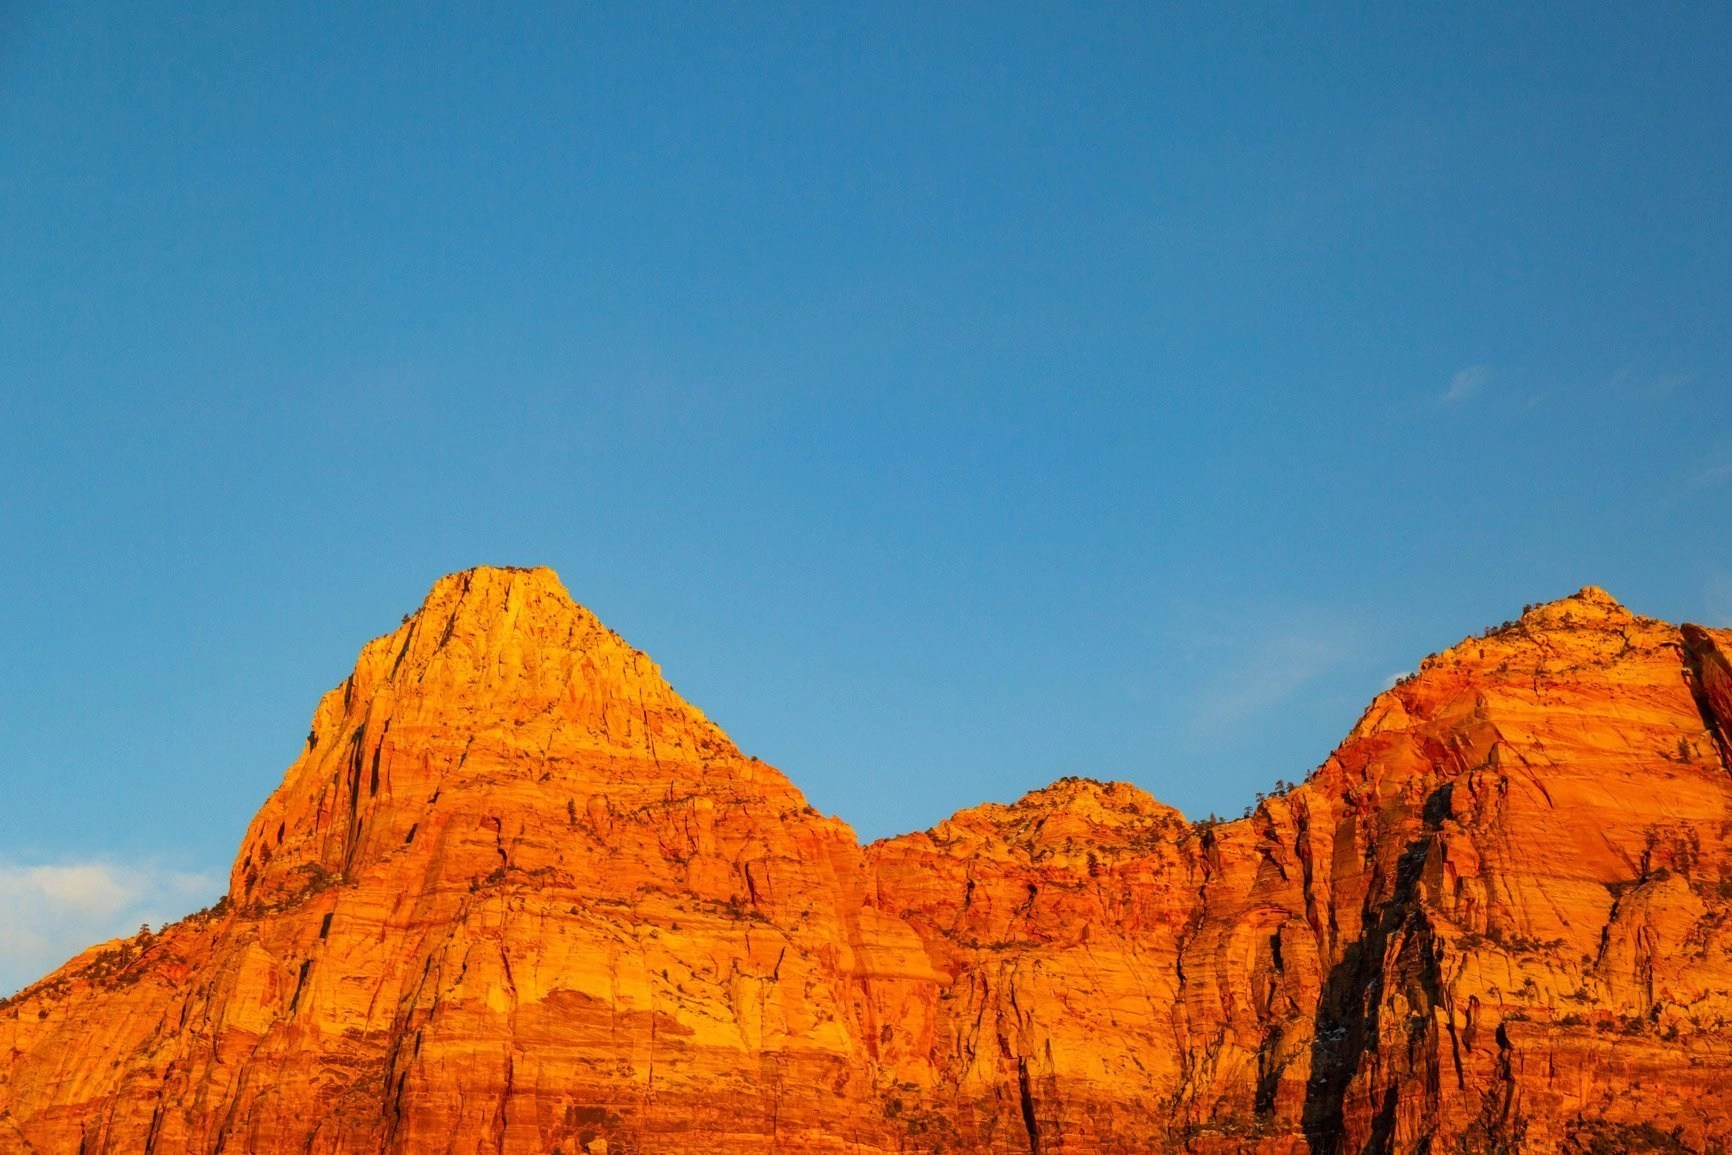 elope in a utah national park for golden sandstone views at sunset